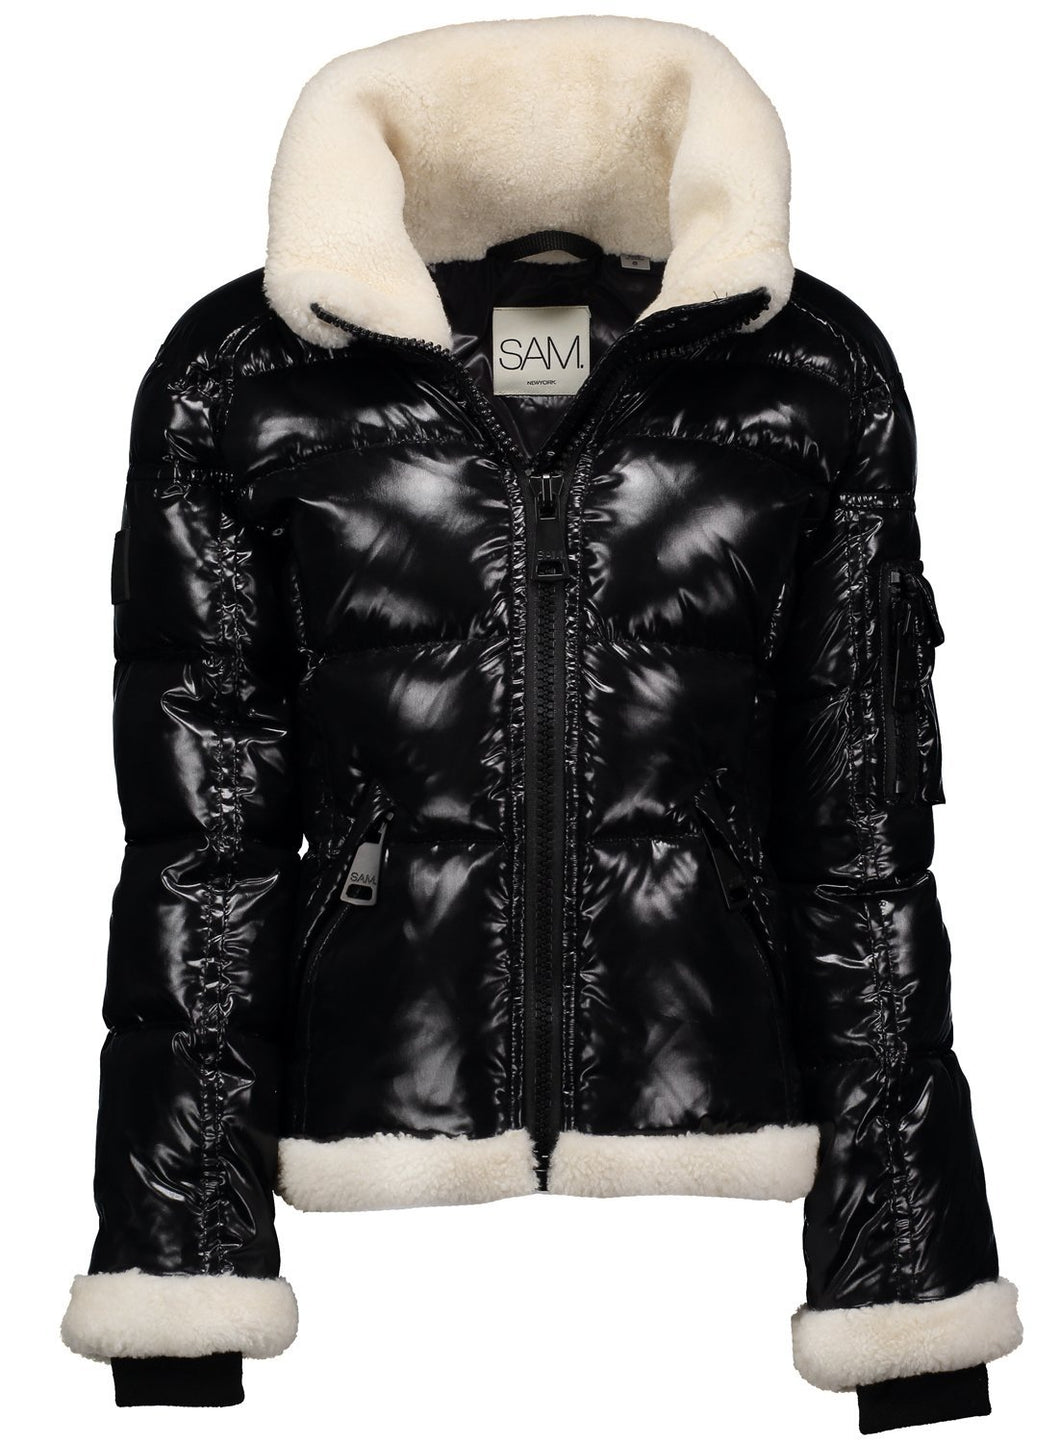 SAM GIRLS SHEARLING FREESTYLE JACKET